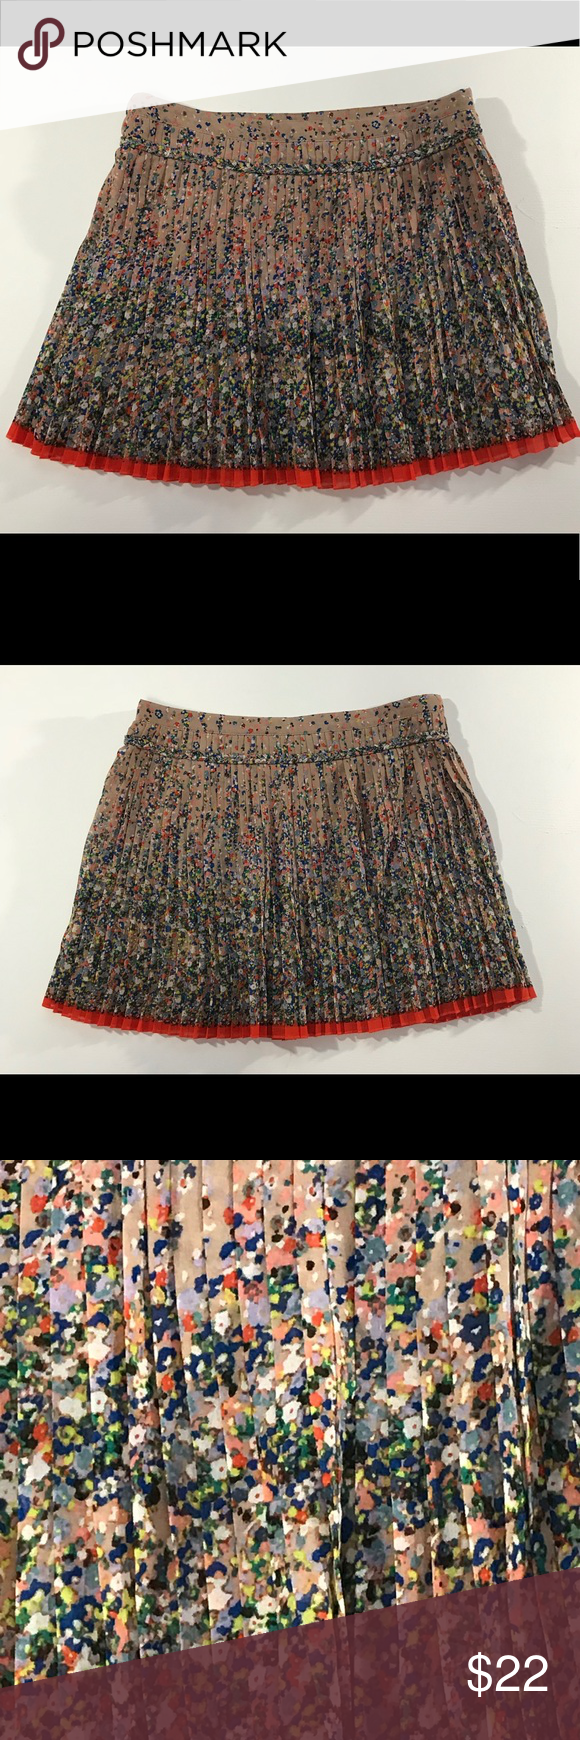 American Eagle Pleated Floral Mini Skirt sz 6 100% polyester skirt has a zipper on the left hip. Skirt is a pretty flower print & has pleats all around. Background is a mauve-pink. American Eagle Outfitters Skirts Mini